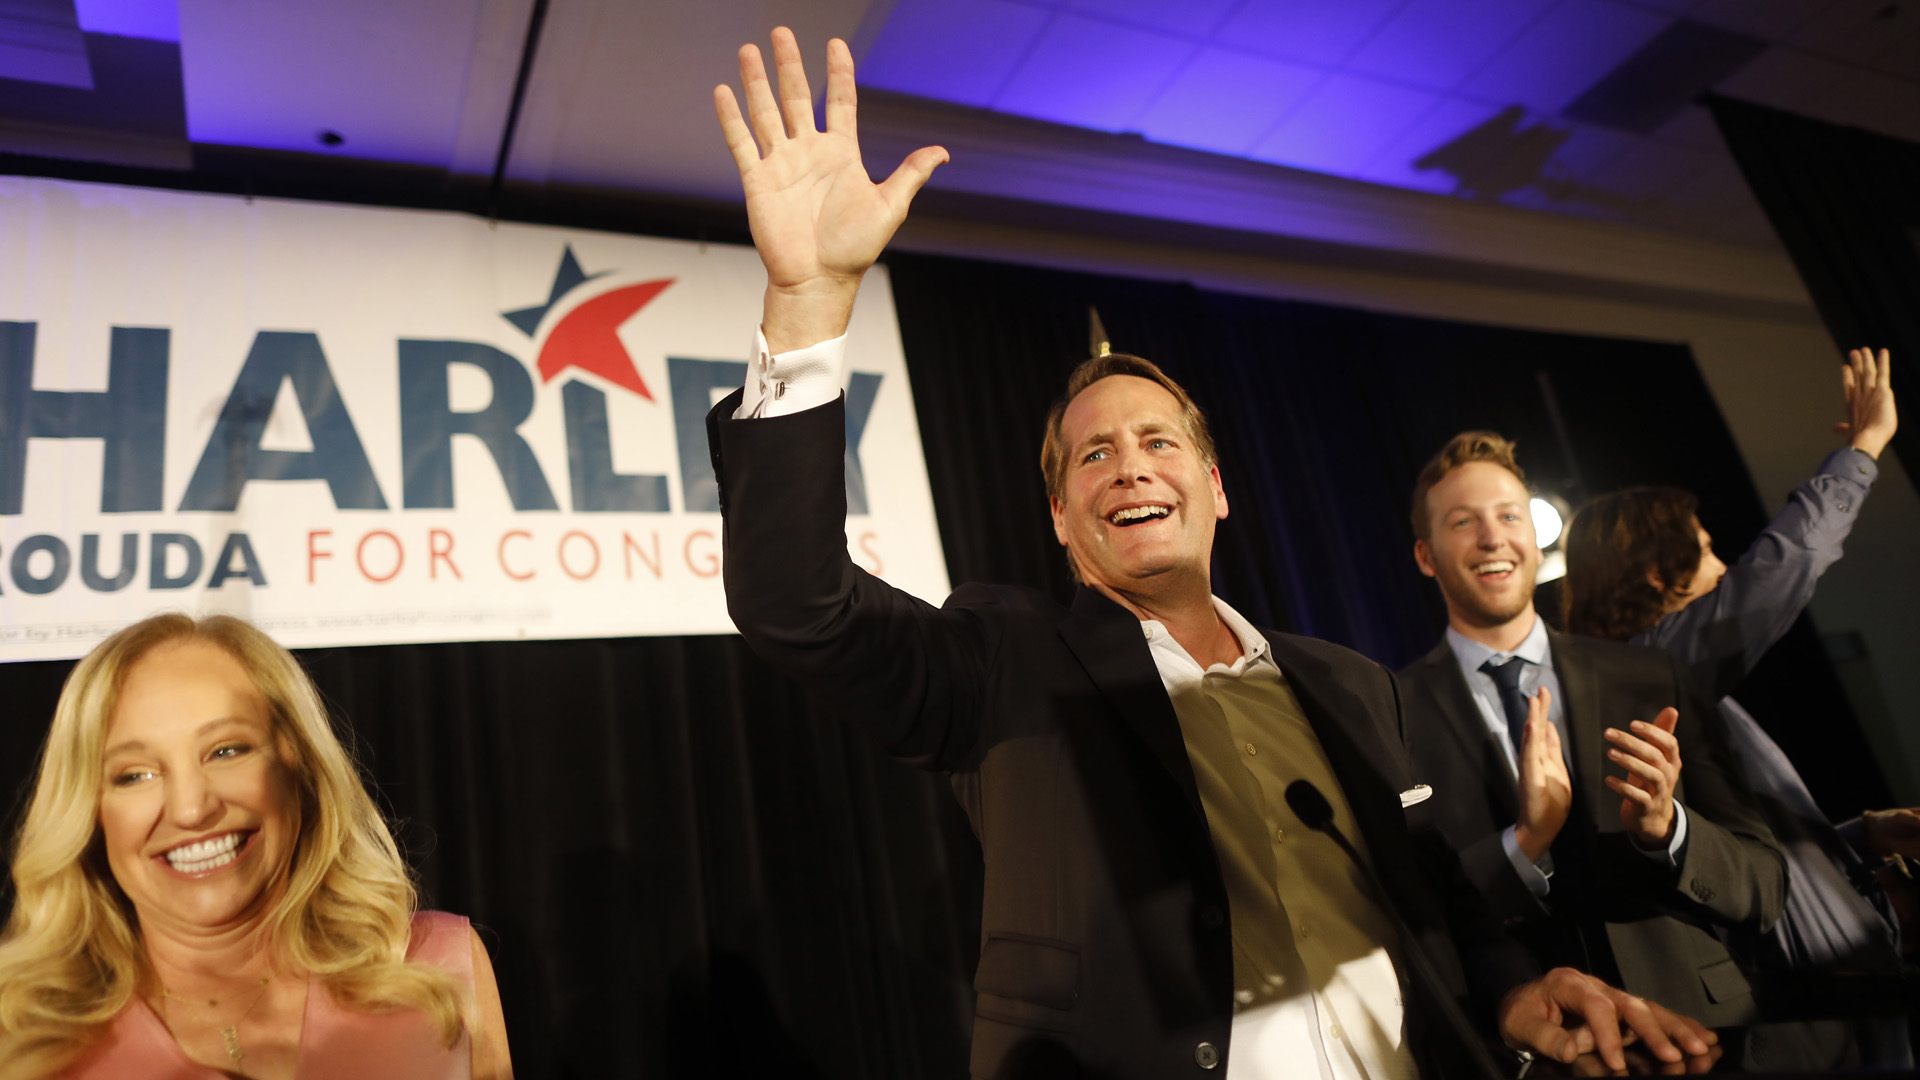 Harley Rouda speaks to supporters with his family during their election day party at the Newport Beach Marriott Hotel and Spa on Nov. 6, 2018, in Newport Beach, California. (Credit: Barbara Davidson/Getty Images)